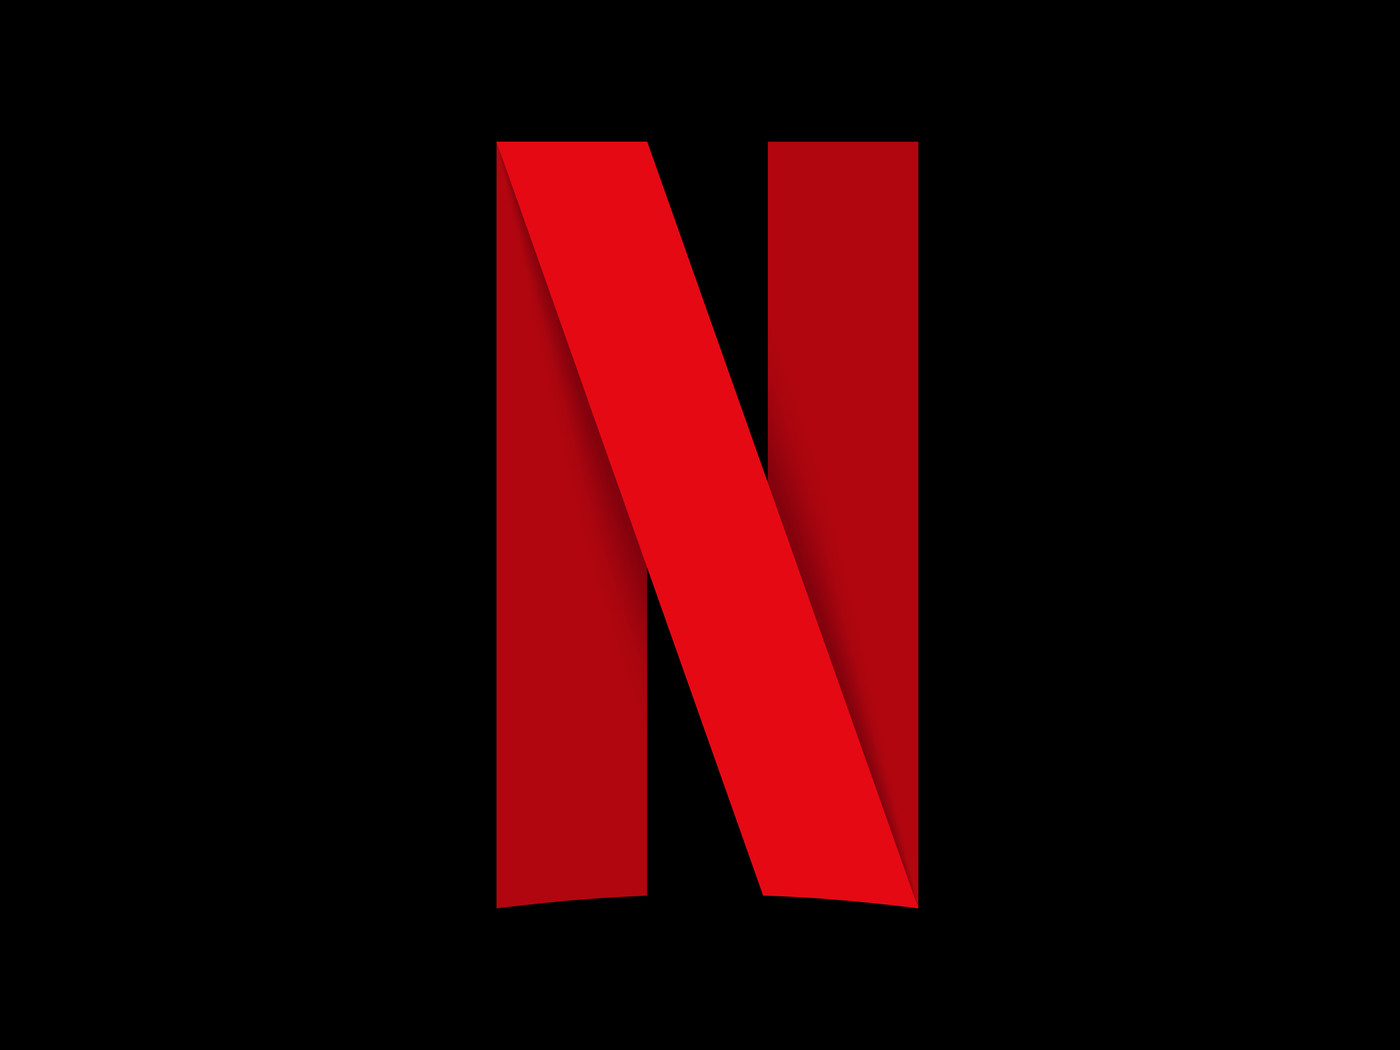 Netflix : to release new movie every week in 2021